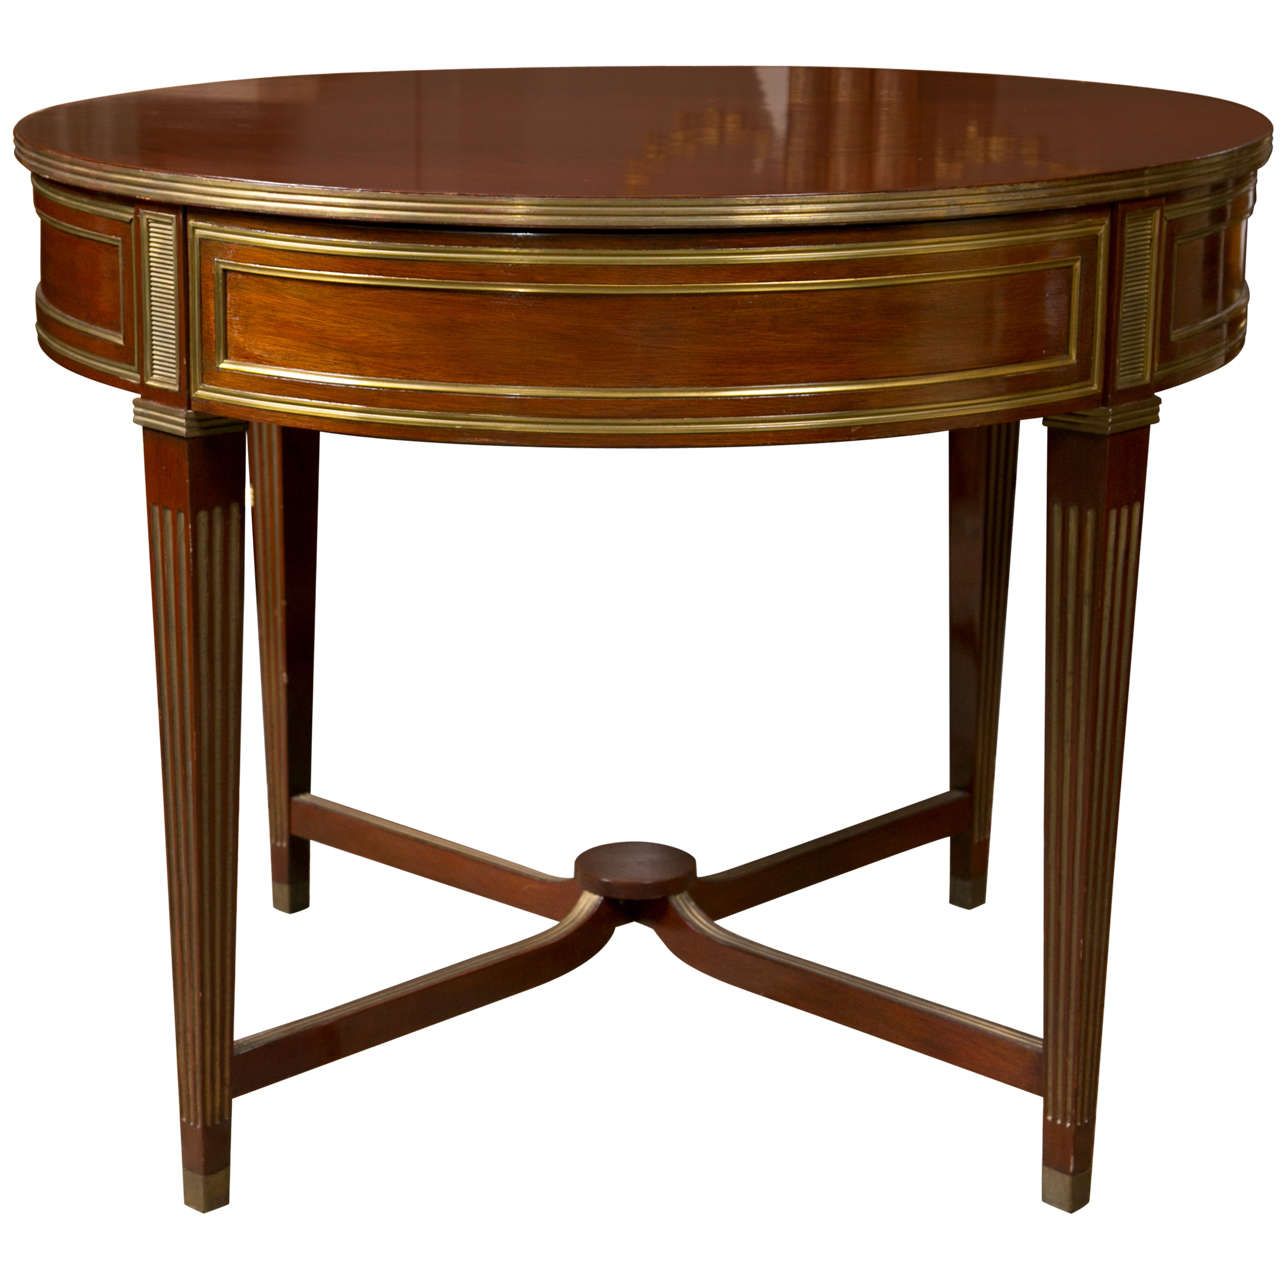 19th Century Russian Neoclassical Flame Mahogany Centre / Gueridon Table